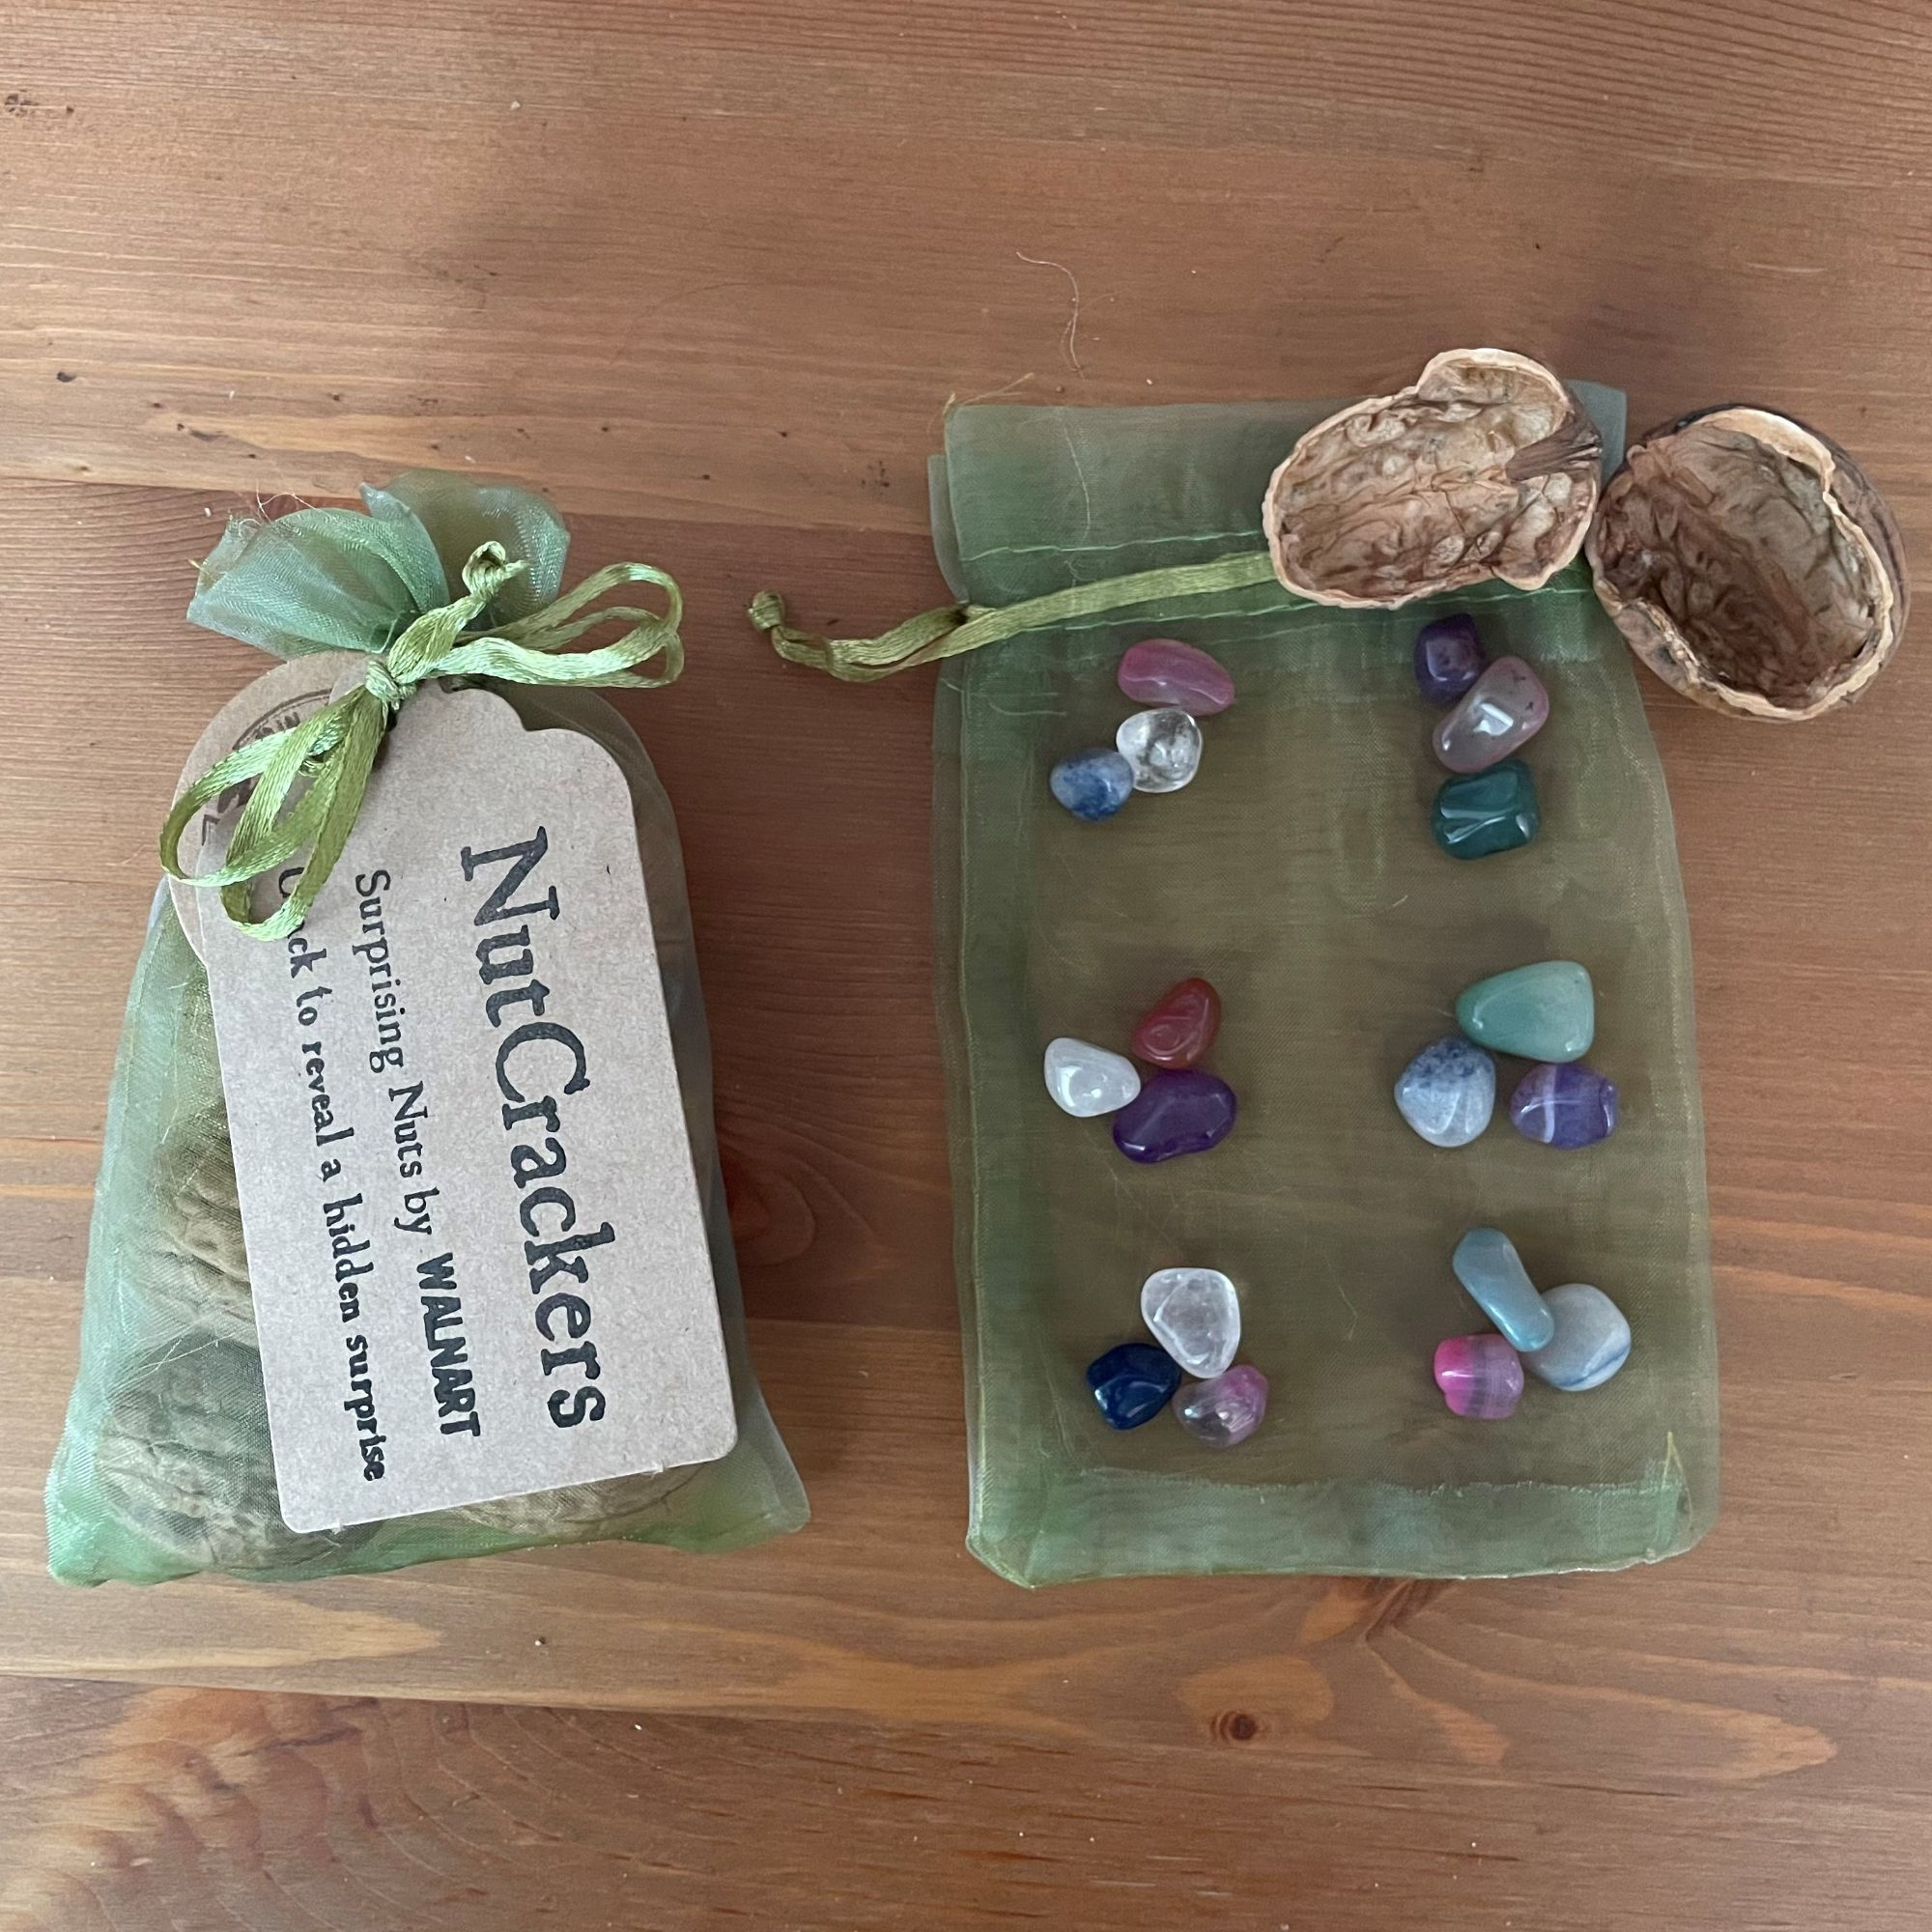 NutCrackers -   Walnut shell surprise crackers with polished stones in a green organza bag - contents.jpg